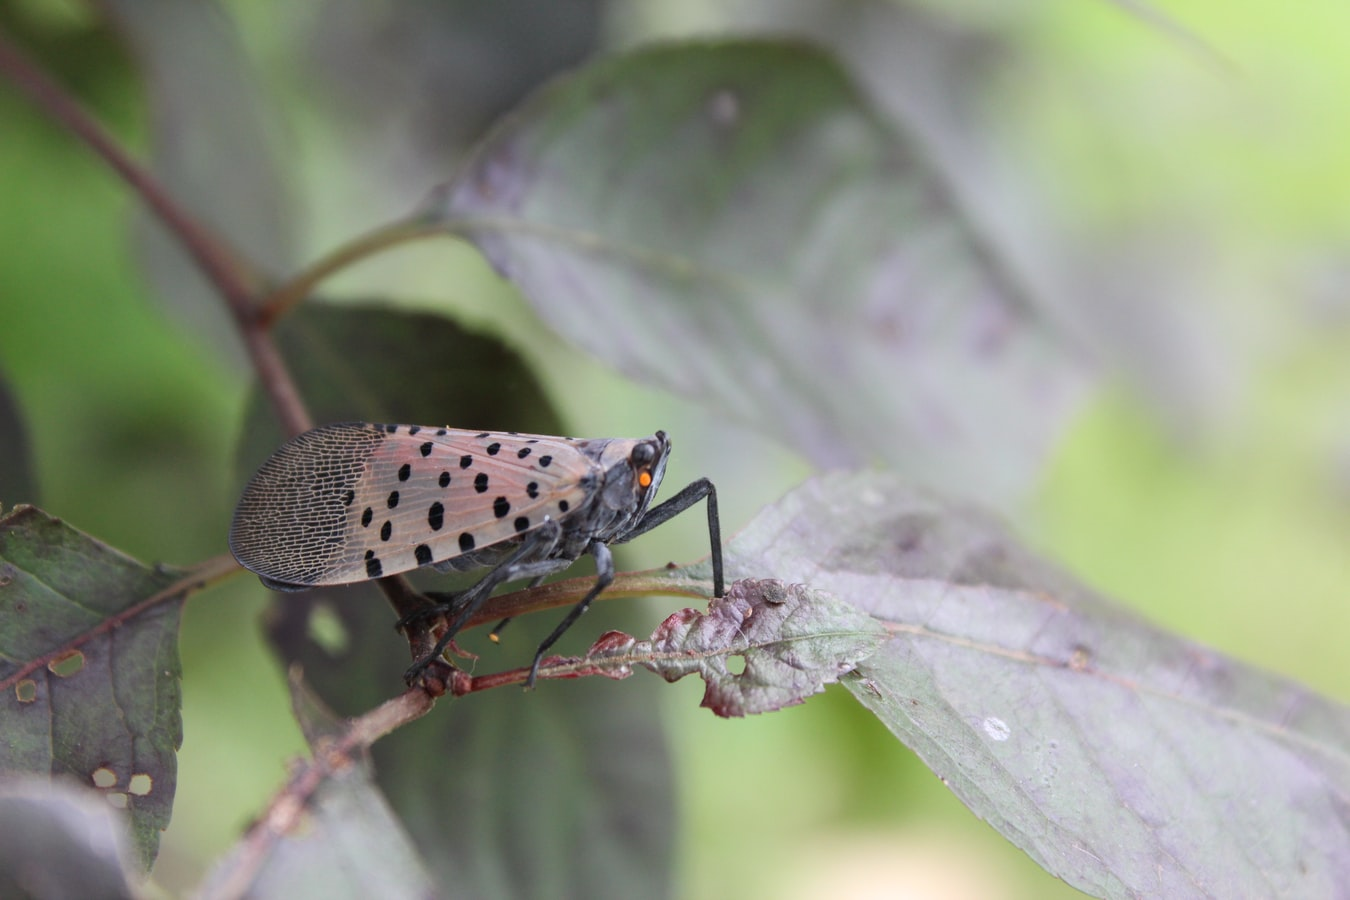 Spotted lanternfly on a green leaf